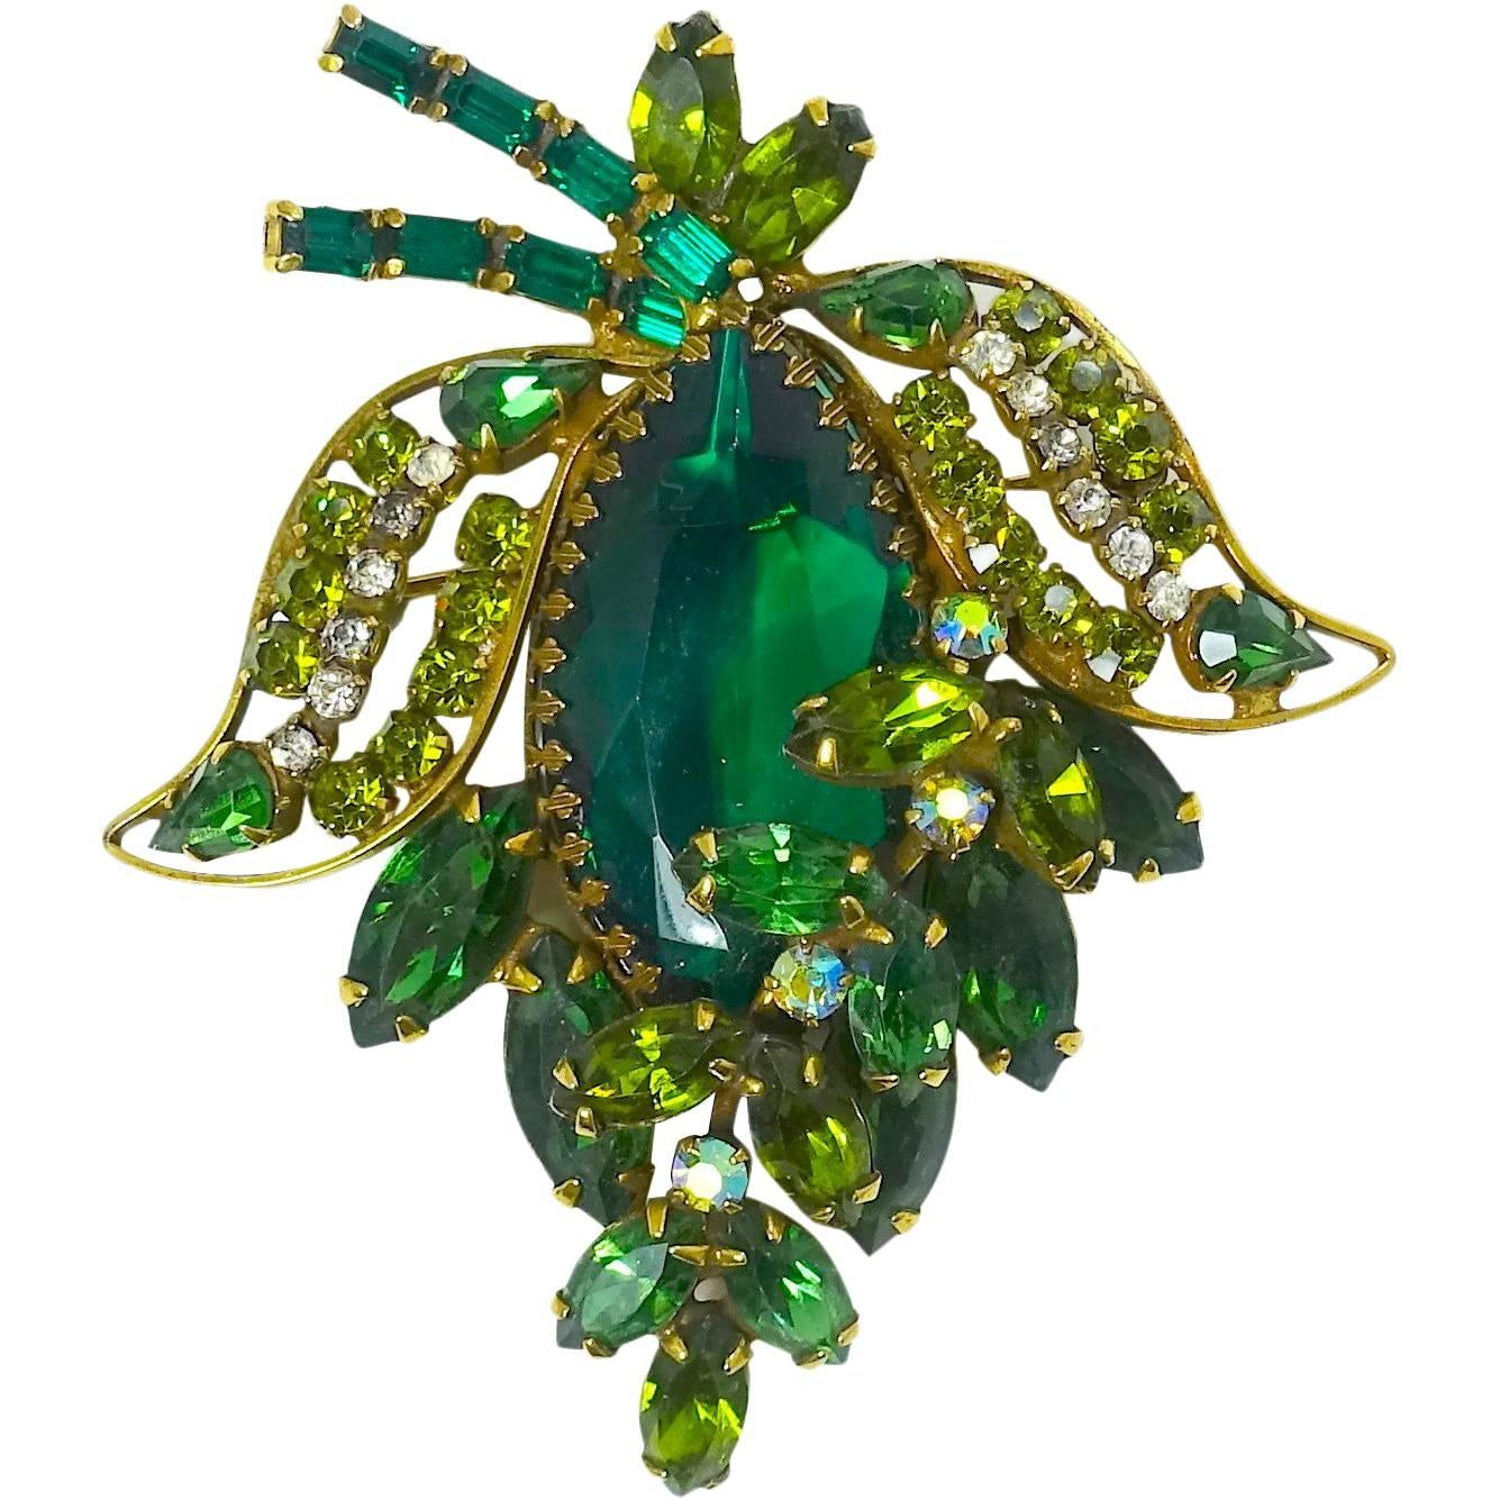 69e9b9e4165 Weiss Vintage Green Floral Brooch, 1950s at 1stdibs